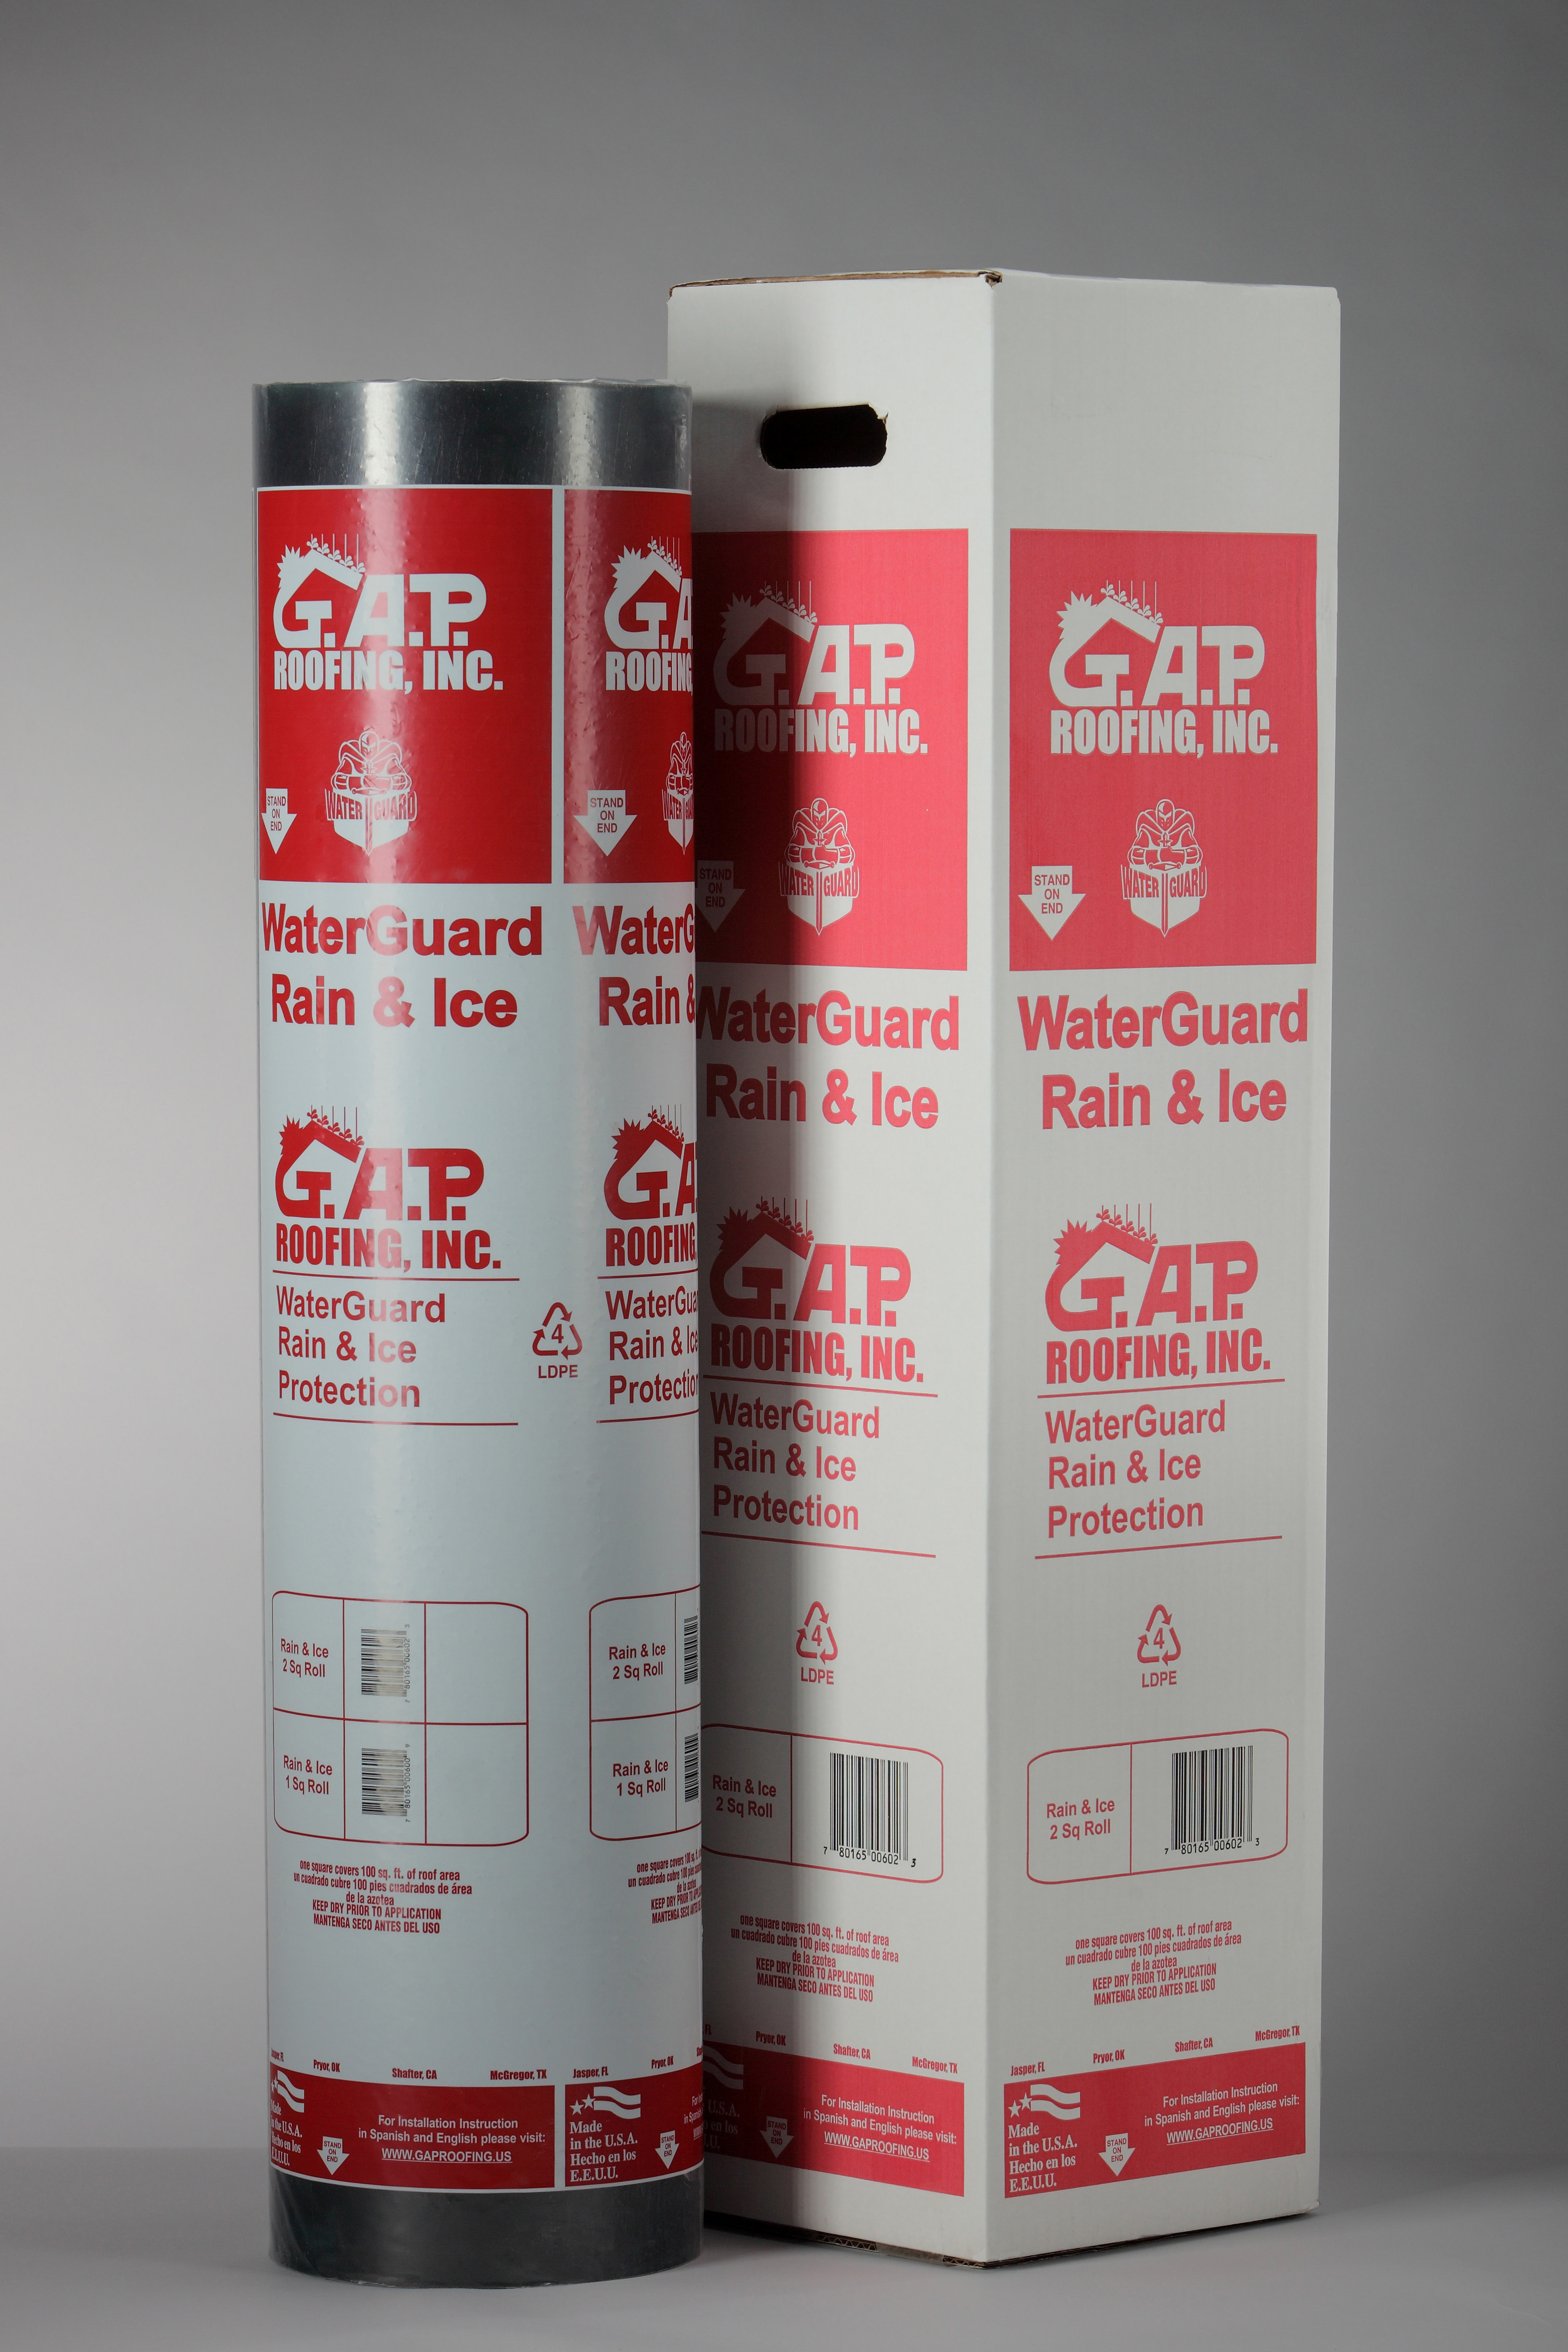 Gap Waterguard Rain Amp Ice Protection G A P Roofing